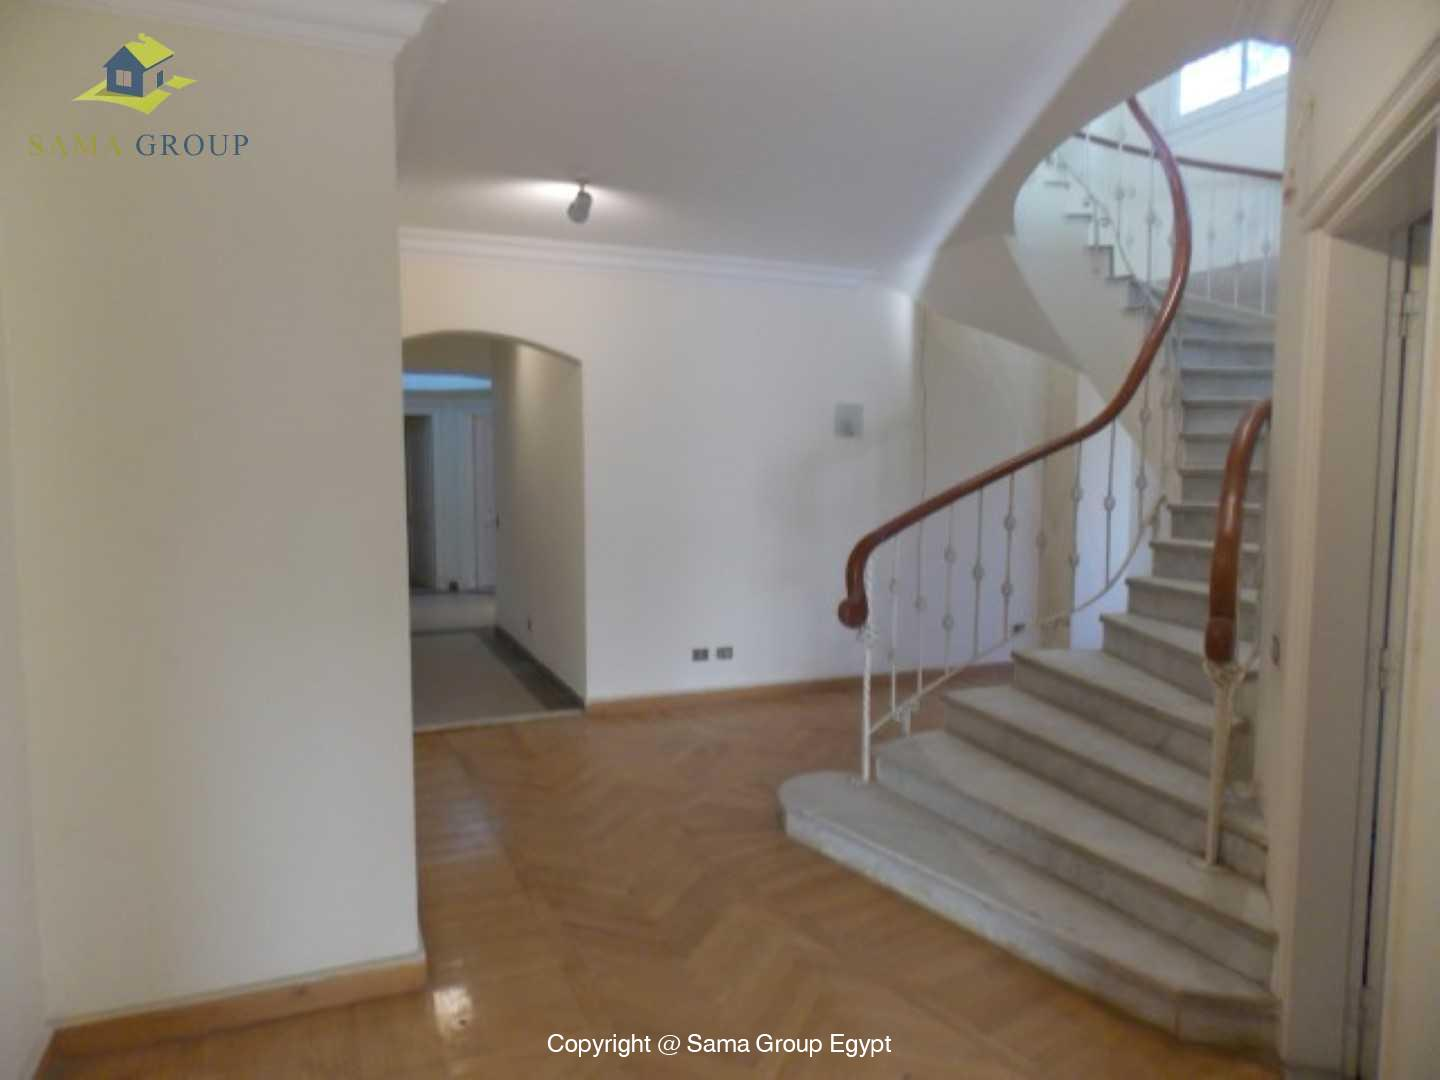 Penthouse with Swimming Pool For Rent In Maadi,Semi furnished,Penthouse NO #10